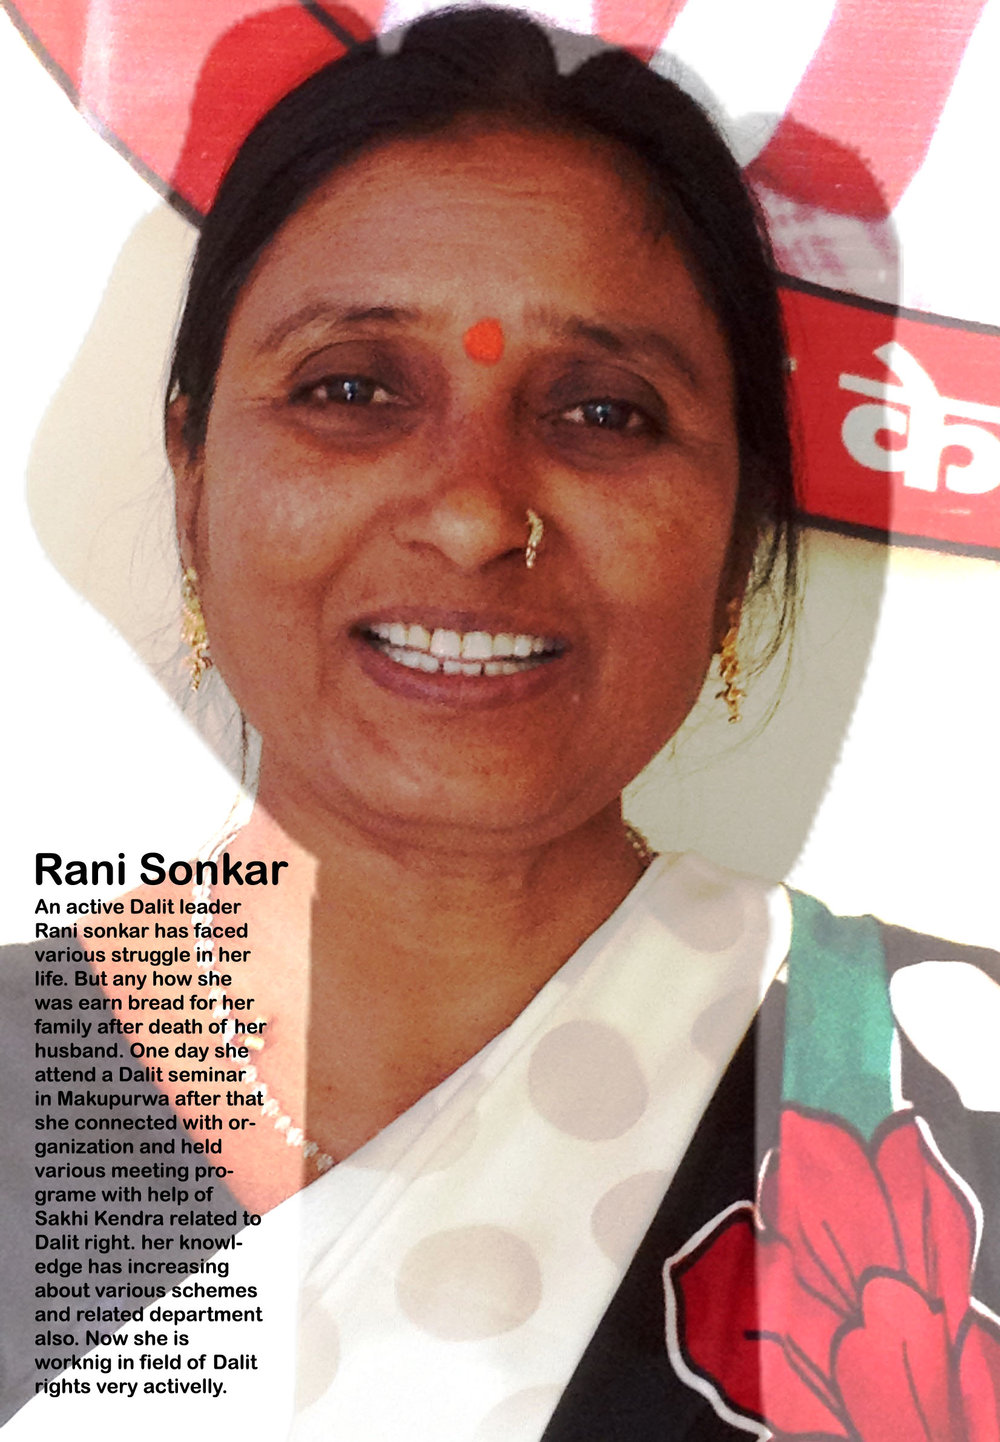 rani sonkar women human right defender--.jpg